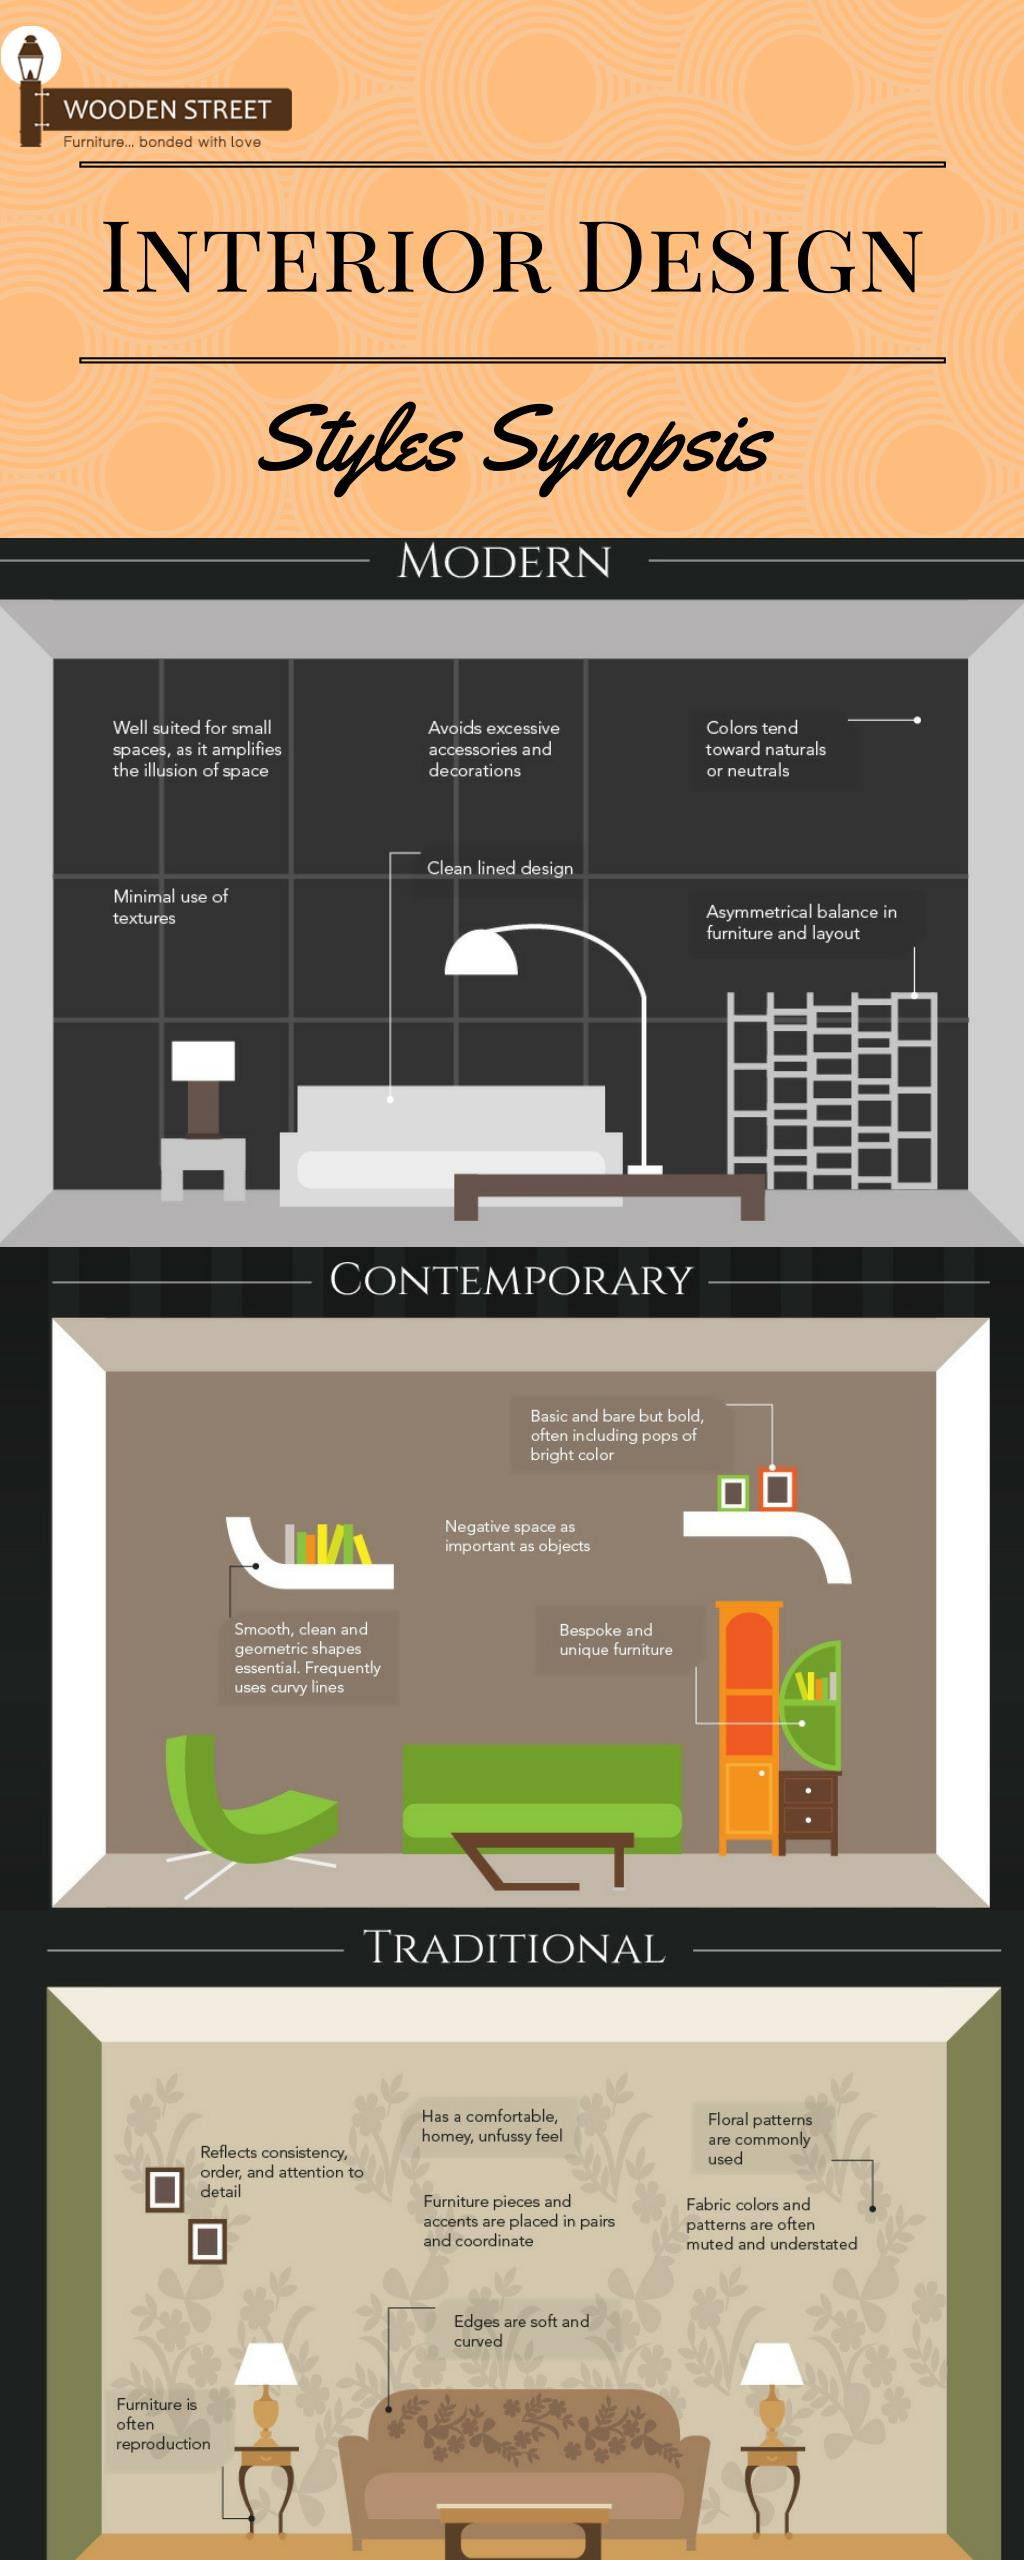 Ppt Interior Design Style Synopsis Powerpoint Presentation Free Download Id 7483986